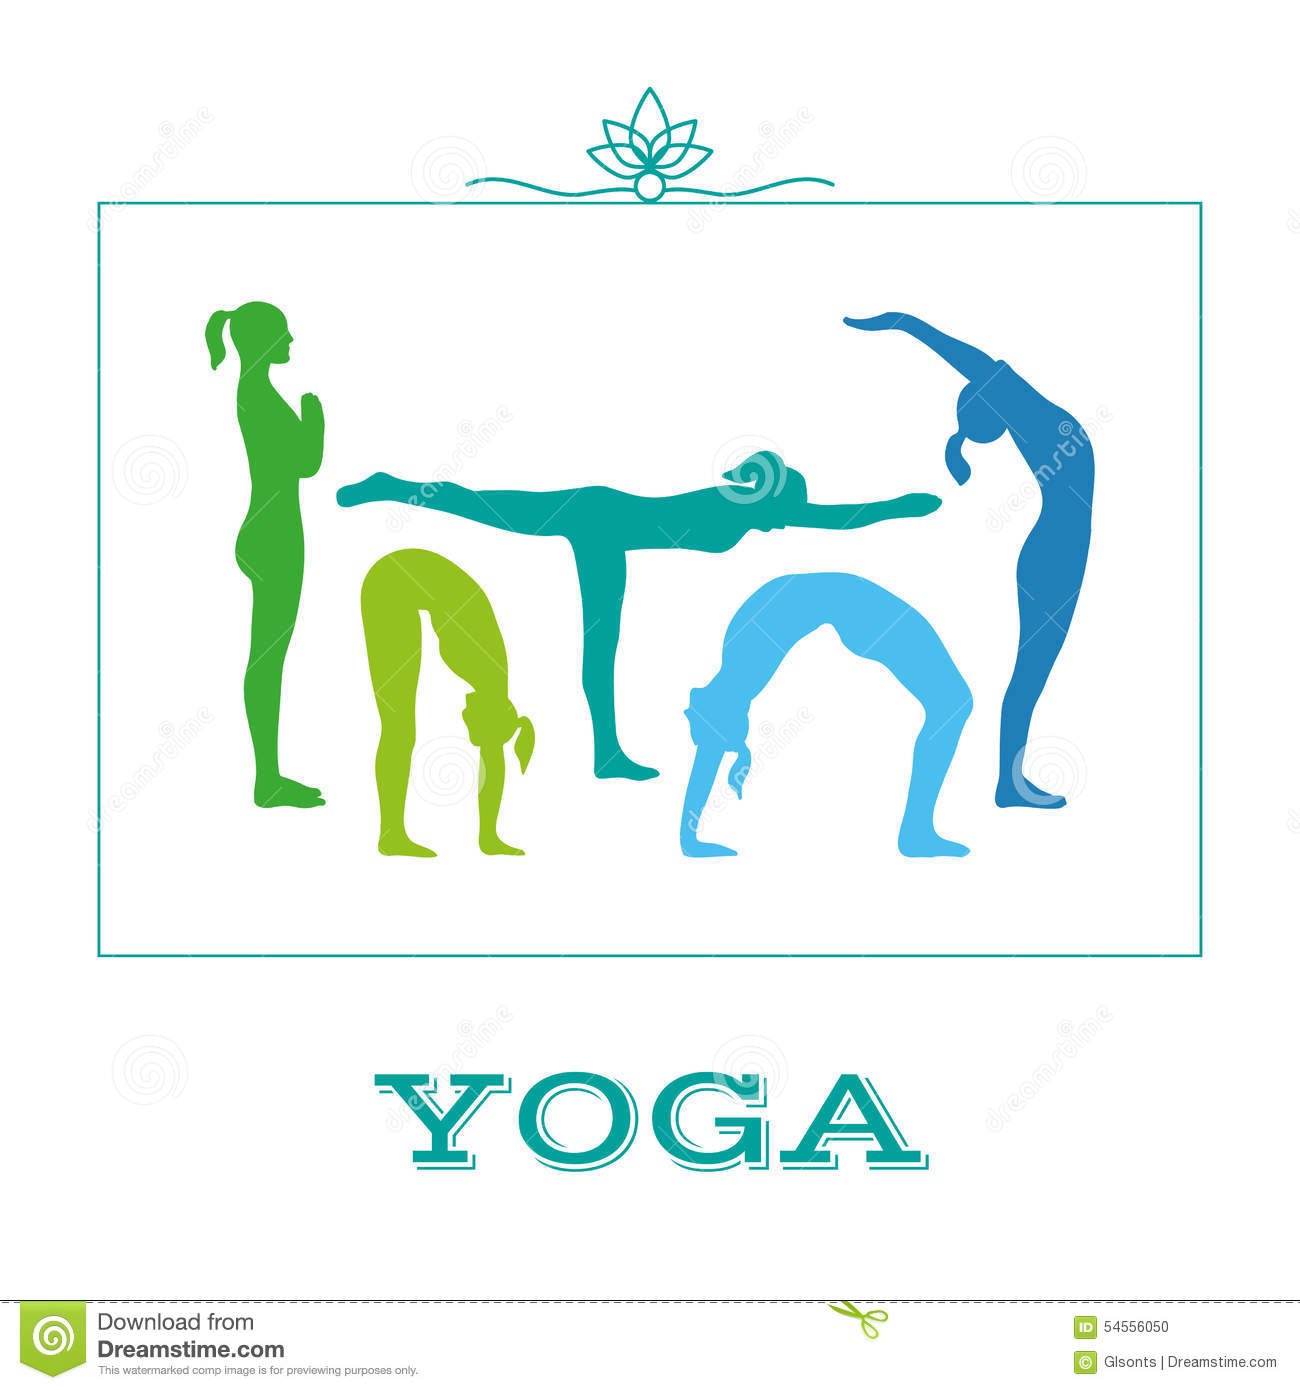 Yoga Poster With Silhouettes Of Women In The Yoga Poses On A White